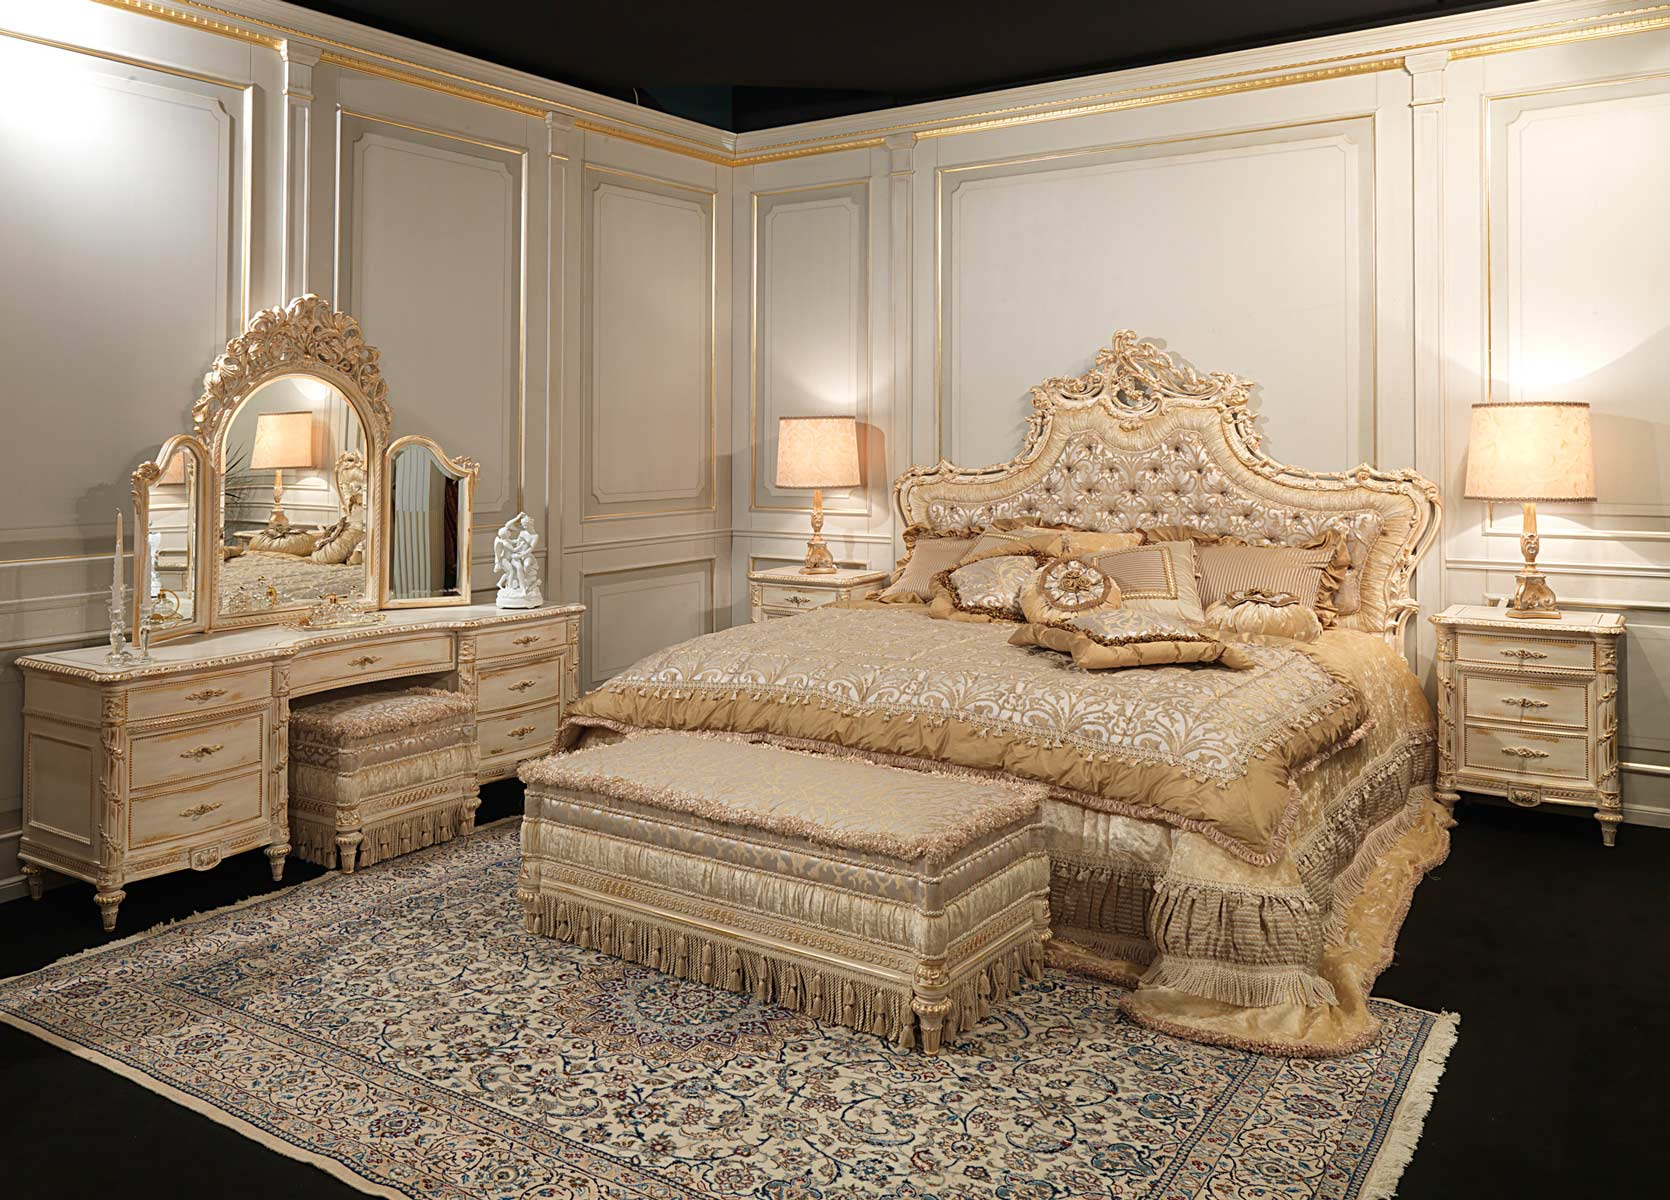 Classic Louis XVI bedroom capitonn232 headboard with rich  : 150 from www.vimercatimeda.com size 1670 x 1200 jpeg 305kB